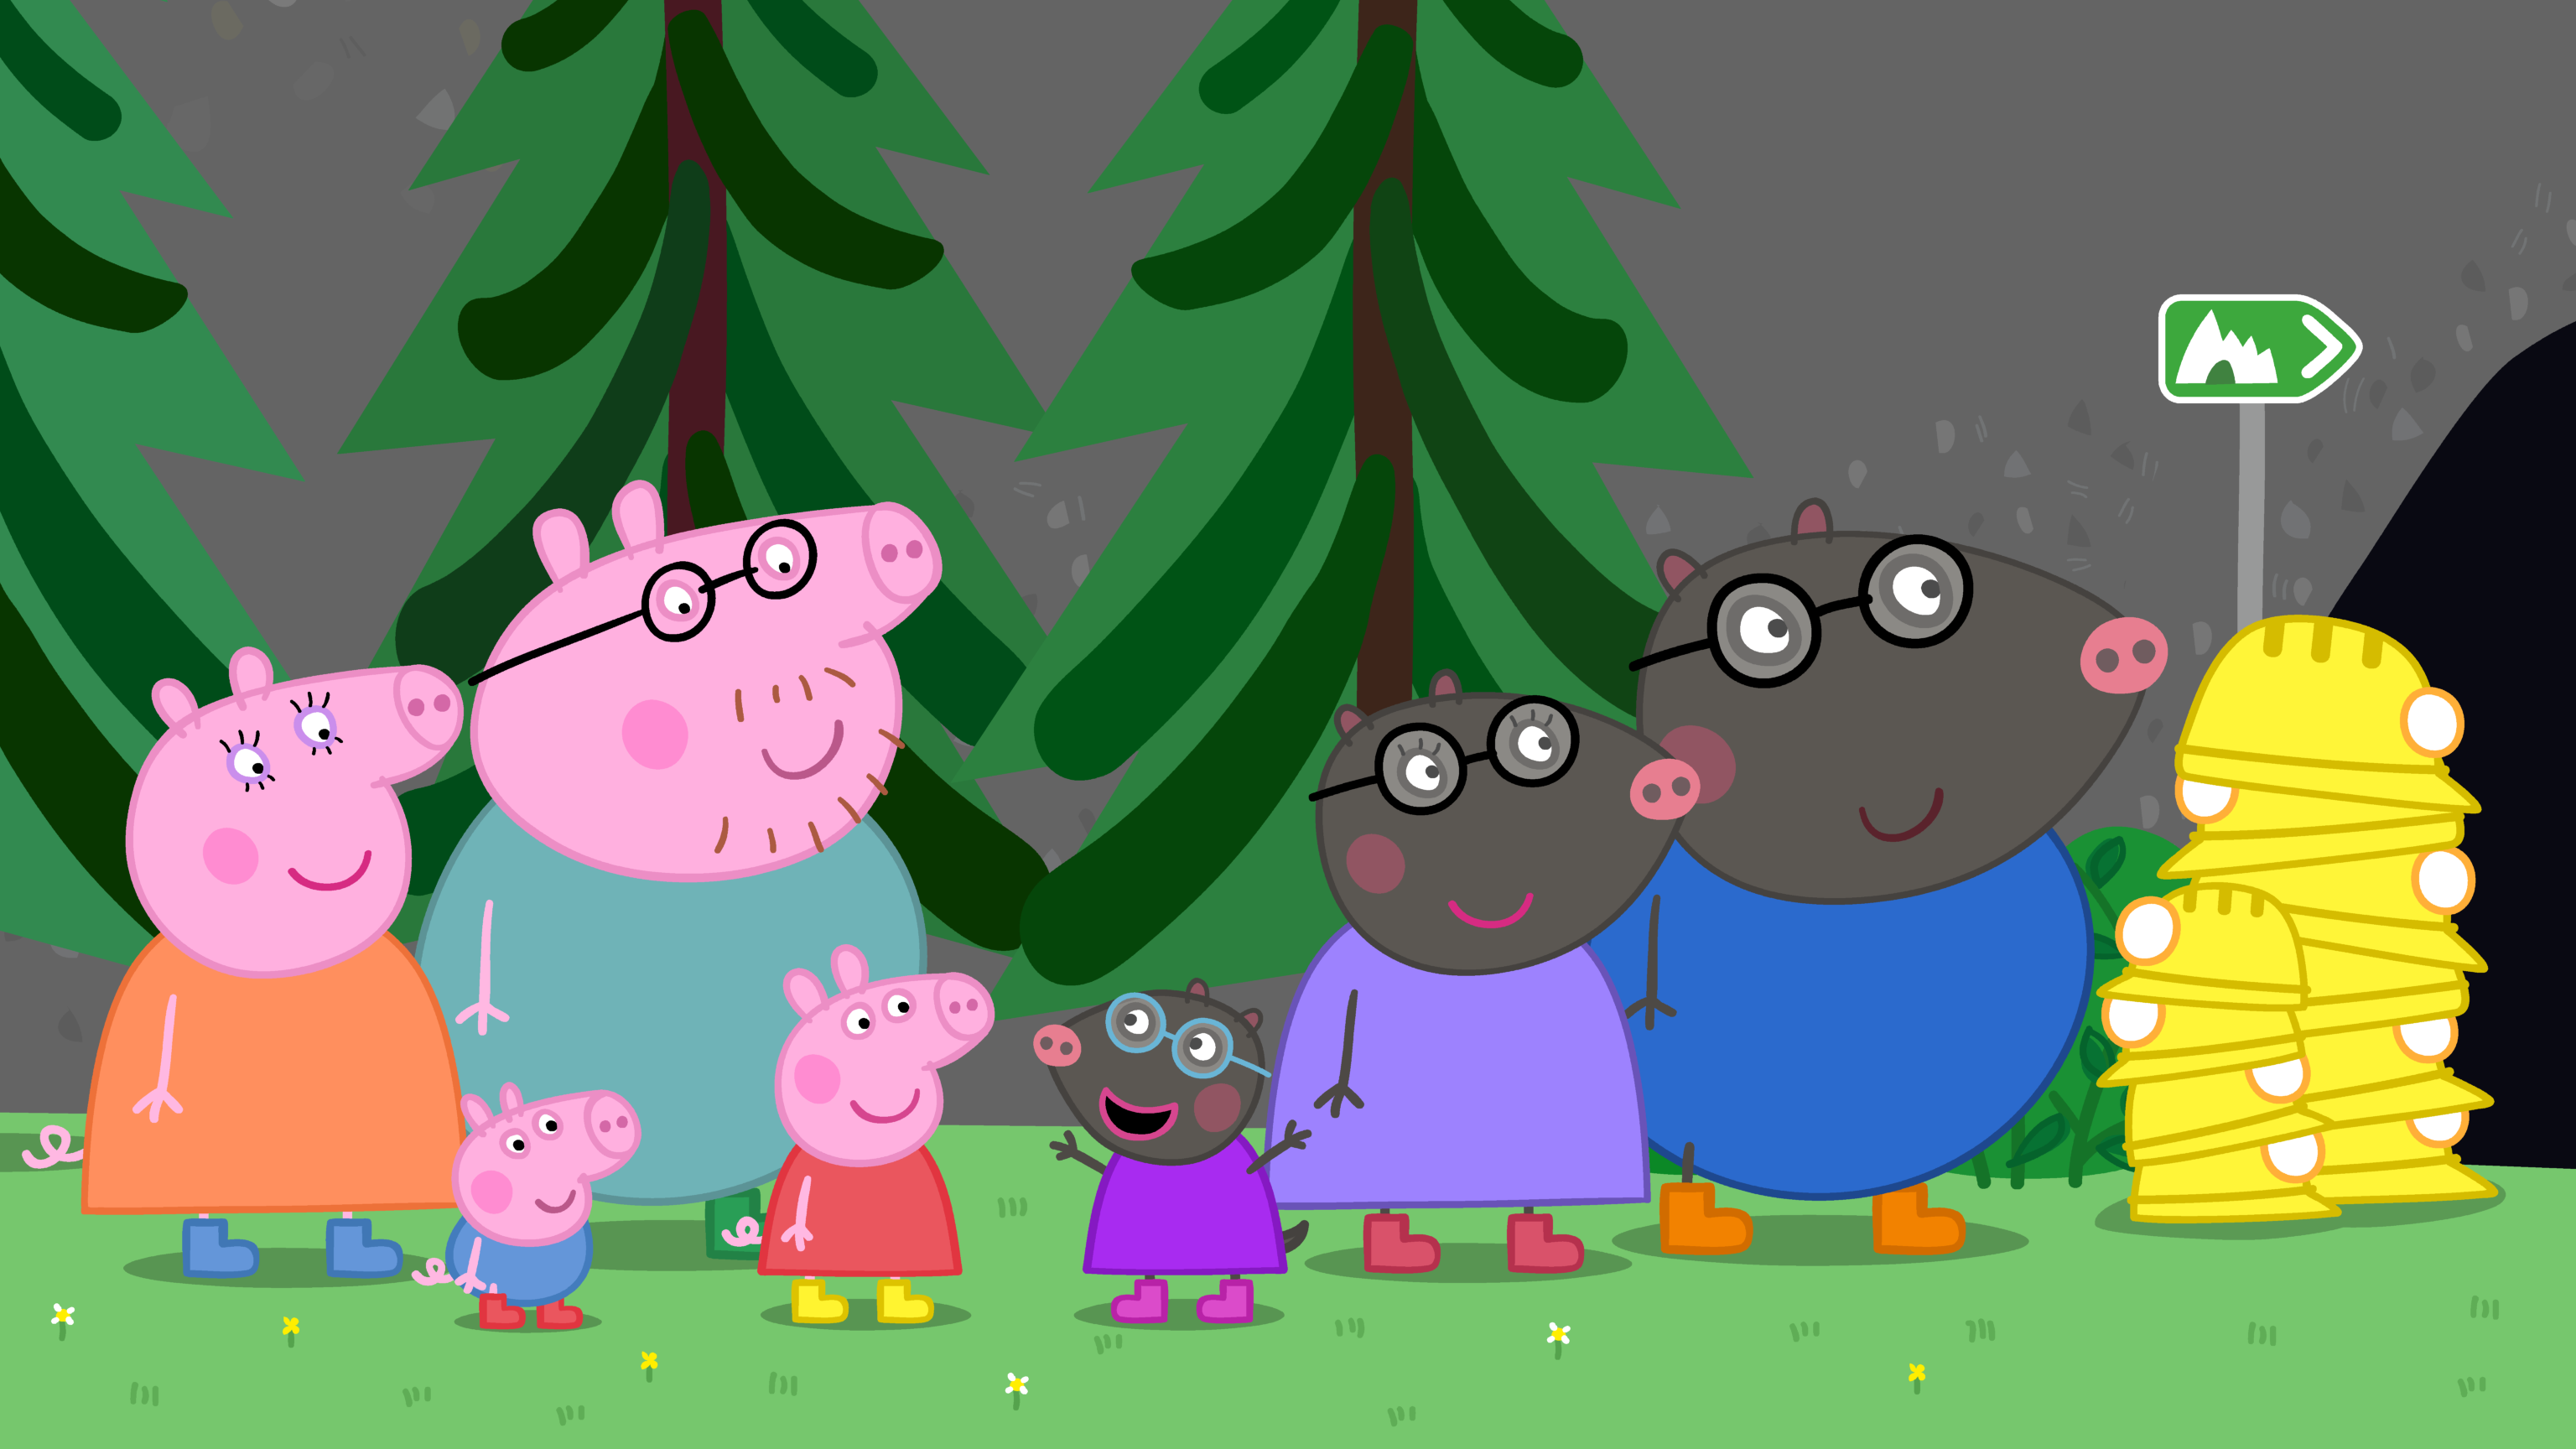 Nickelodeon\'s New Episodes Include Peppa Pig, Becca\'s Bunch.